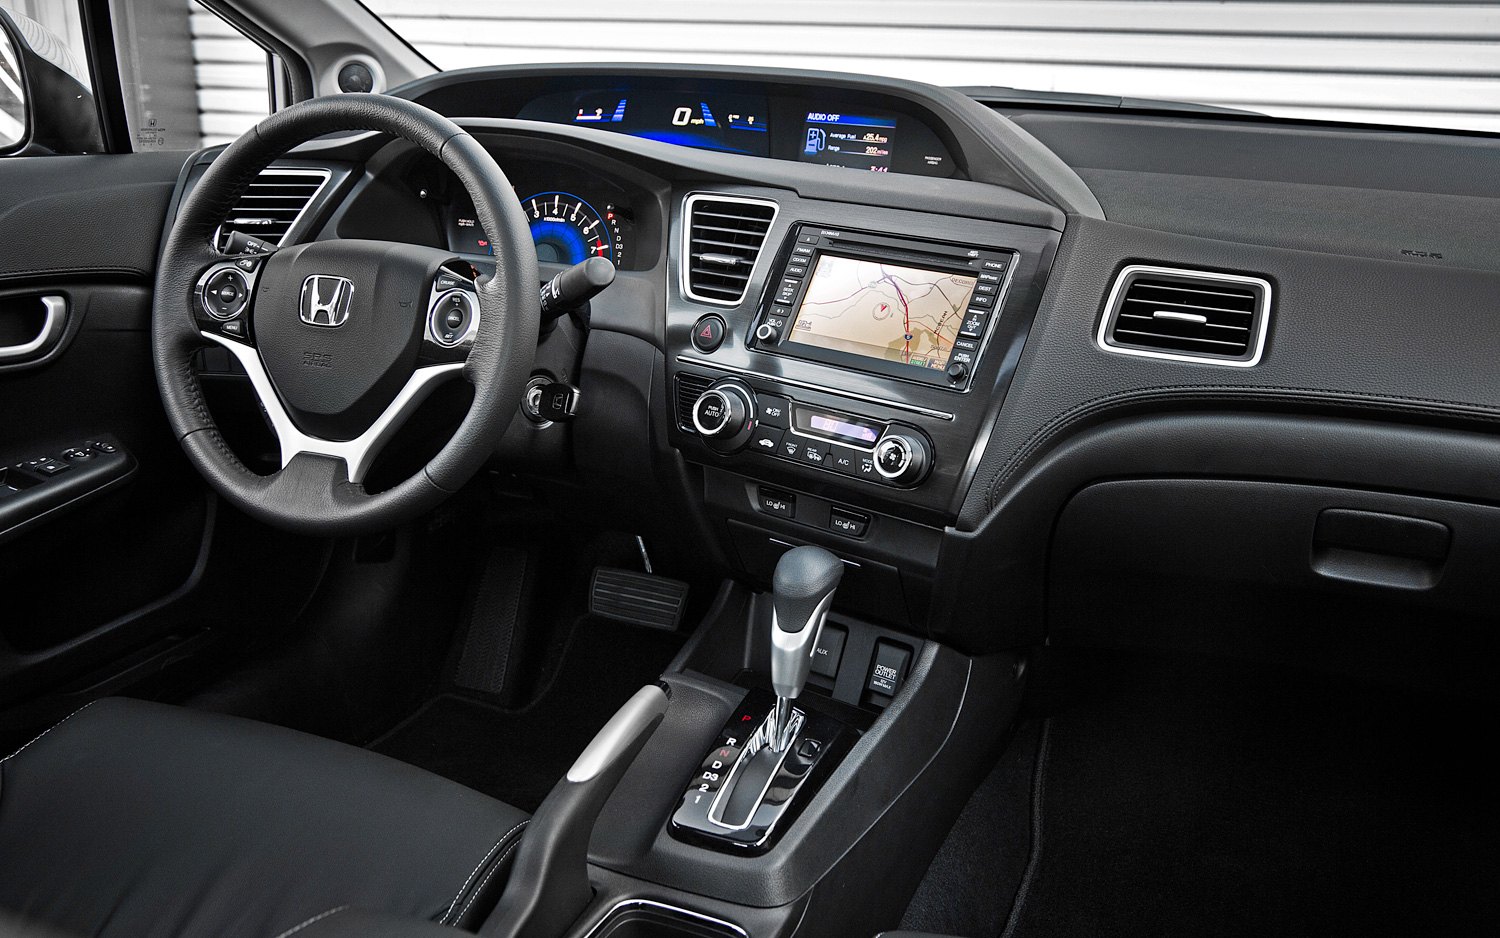 2008 honda civic service manual update what changed